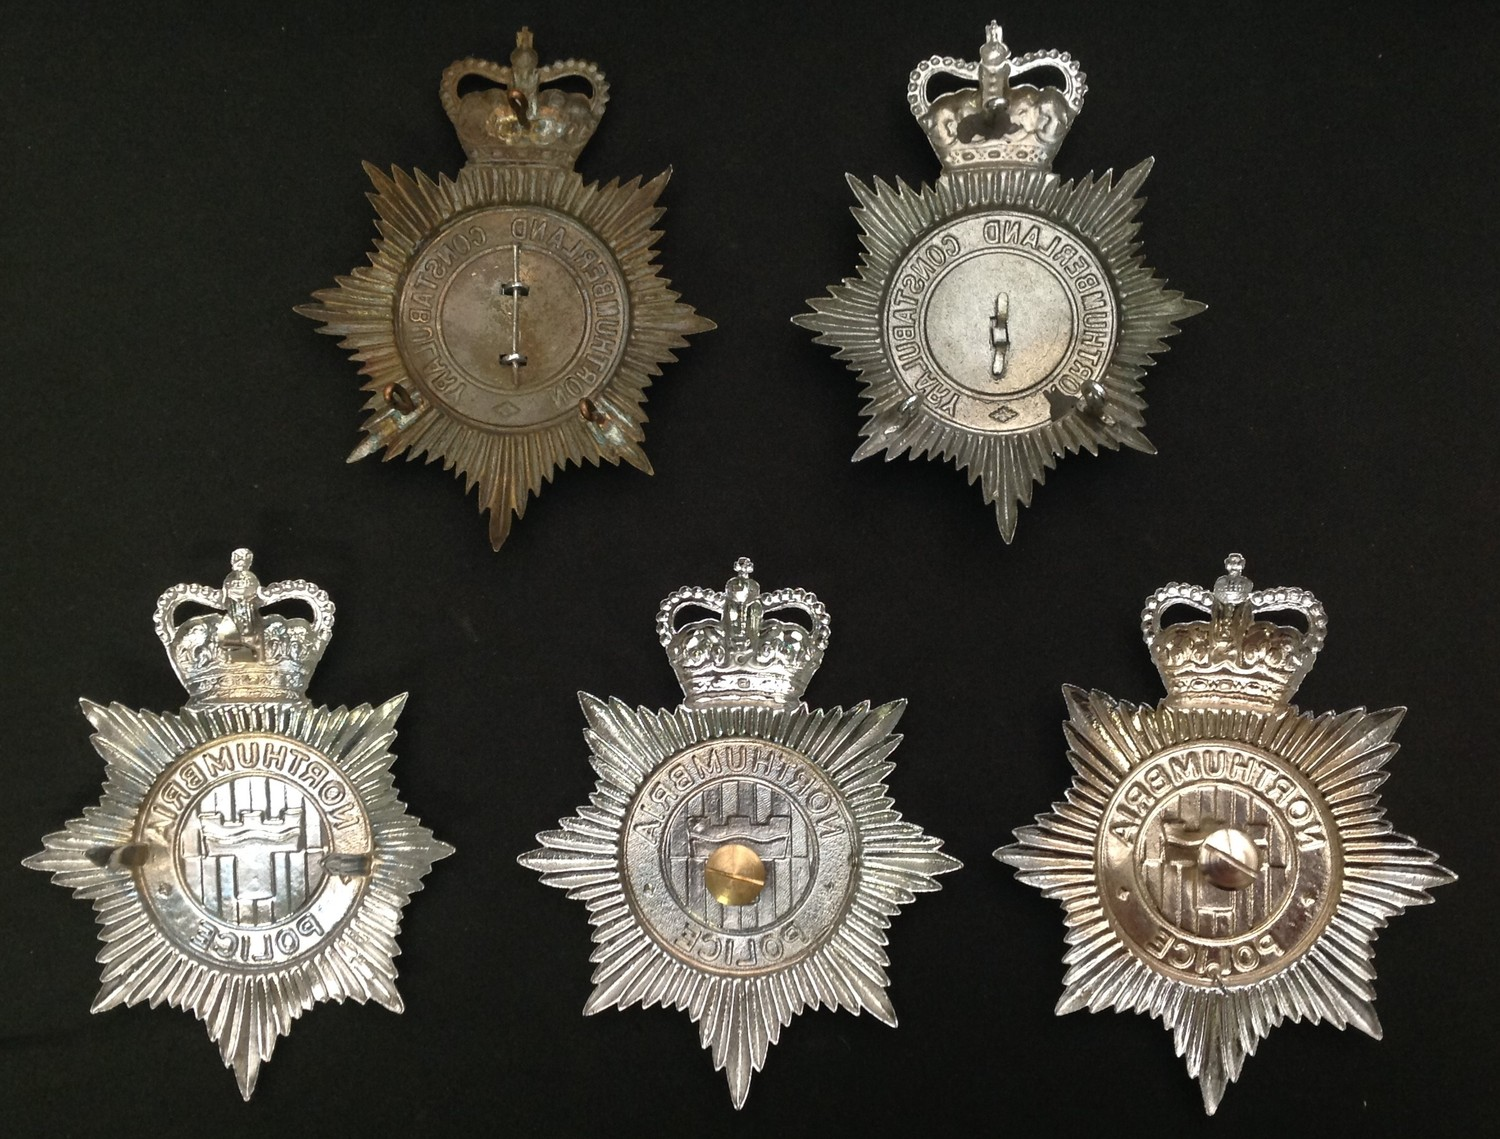 Queens Crown Northumberland Constabulary Night Plate: Queens Crown Northumberland Constabulary - Image 2 of 2